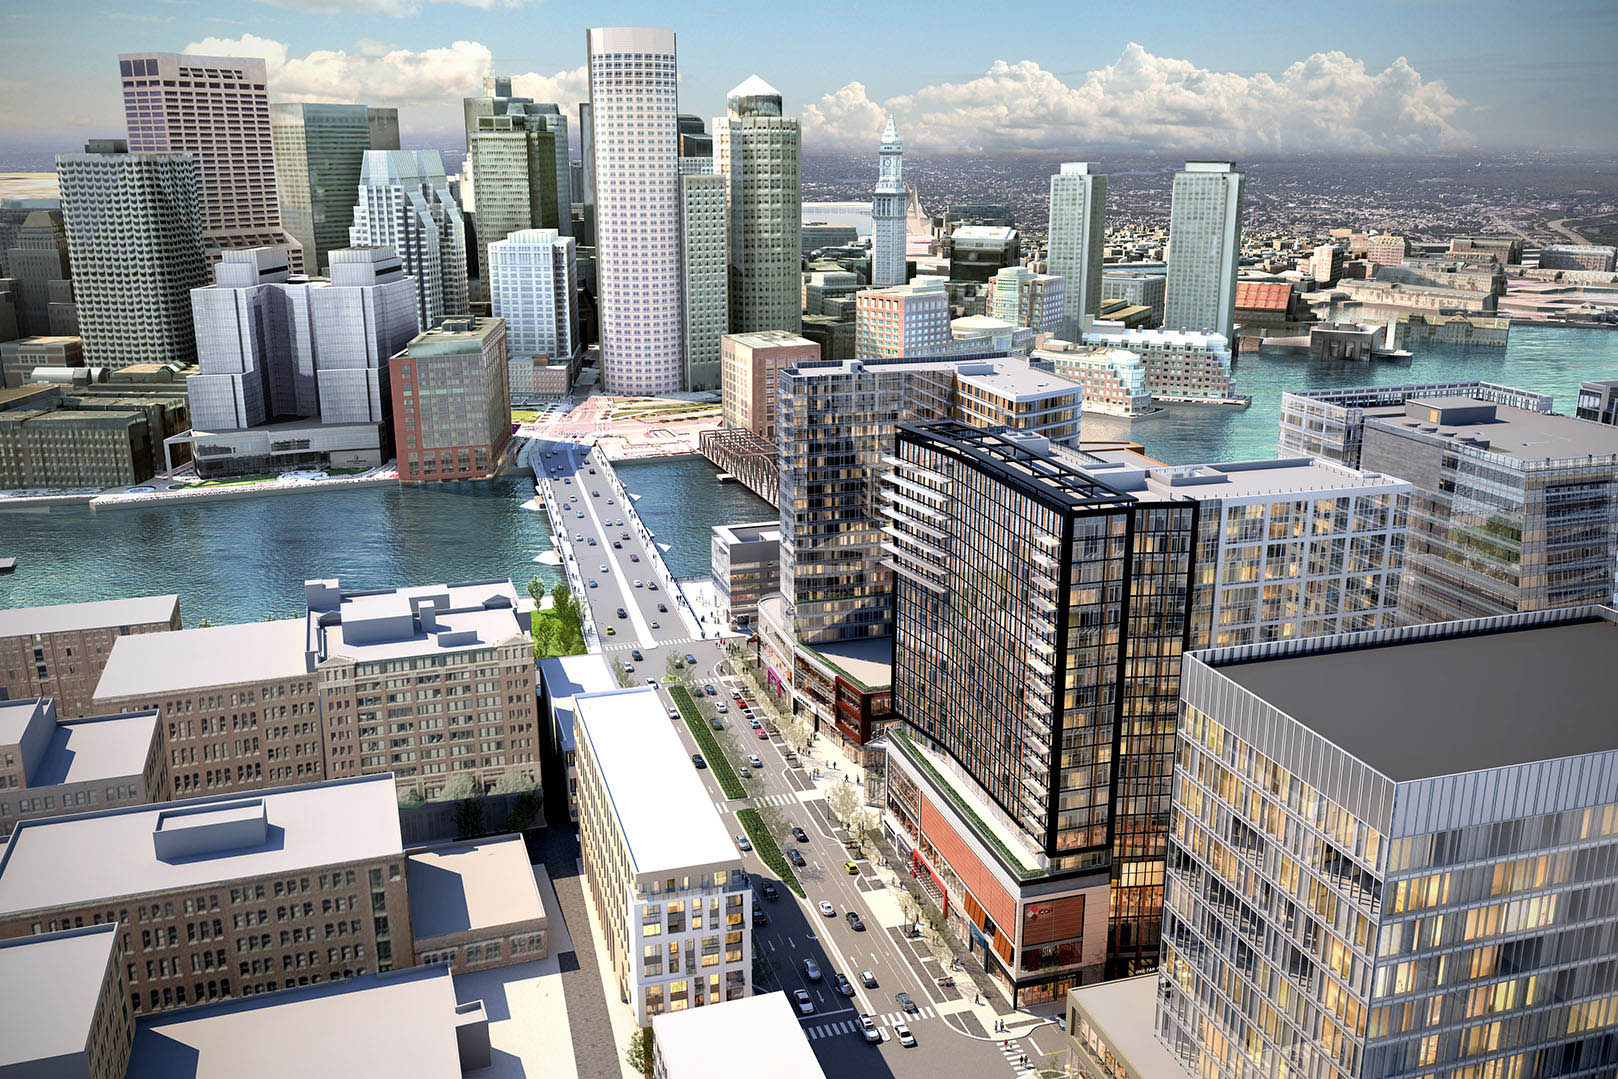 New plans for Seaport Square project | Boston Herald